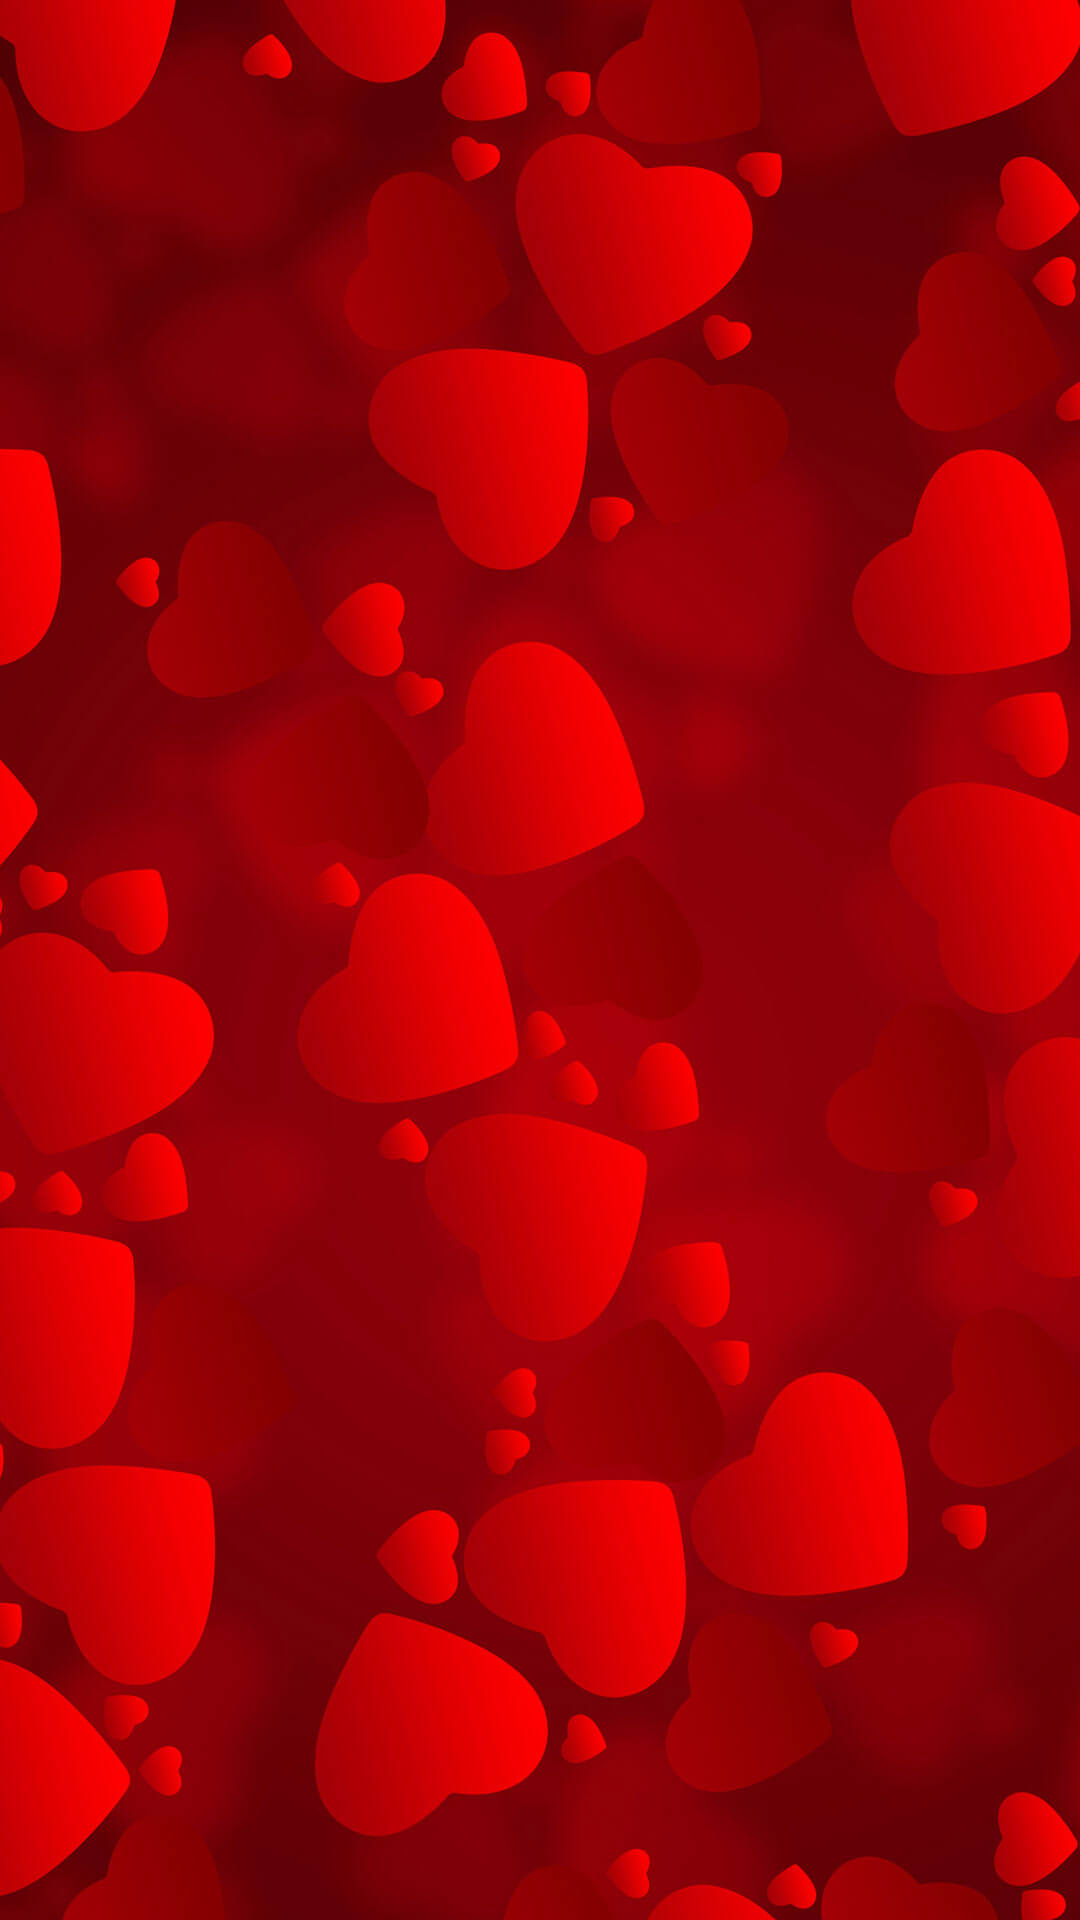 Love Iphone Hearts Wallpapers For Iphone